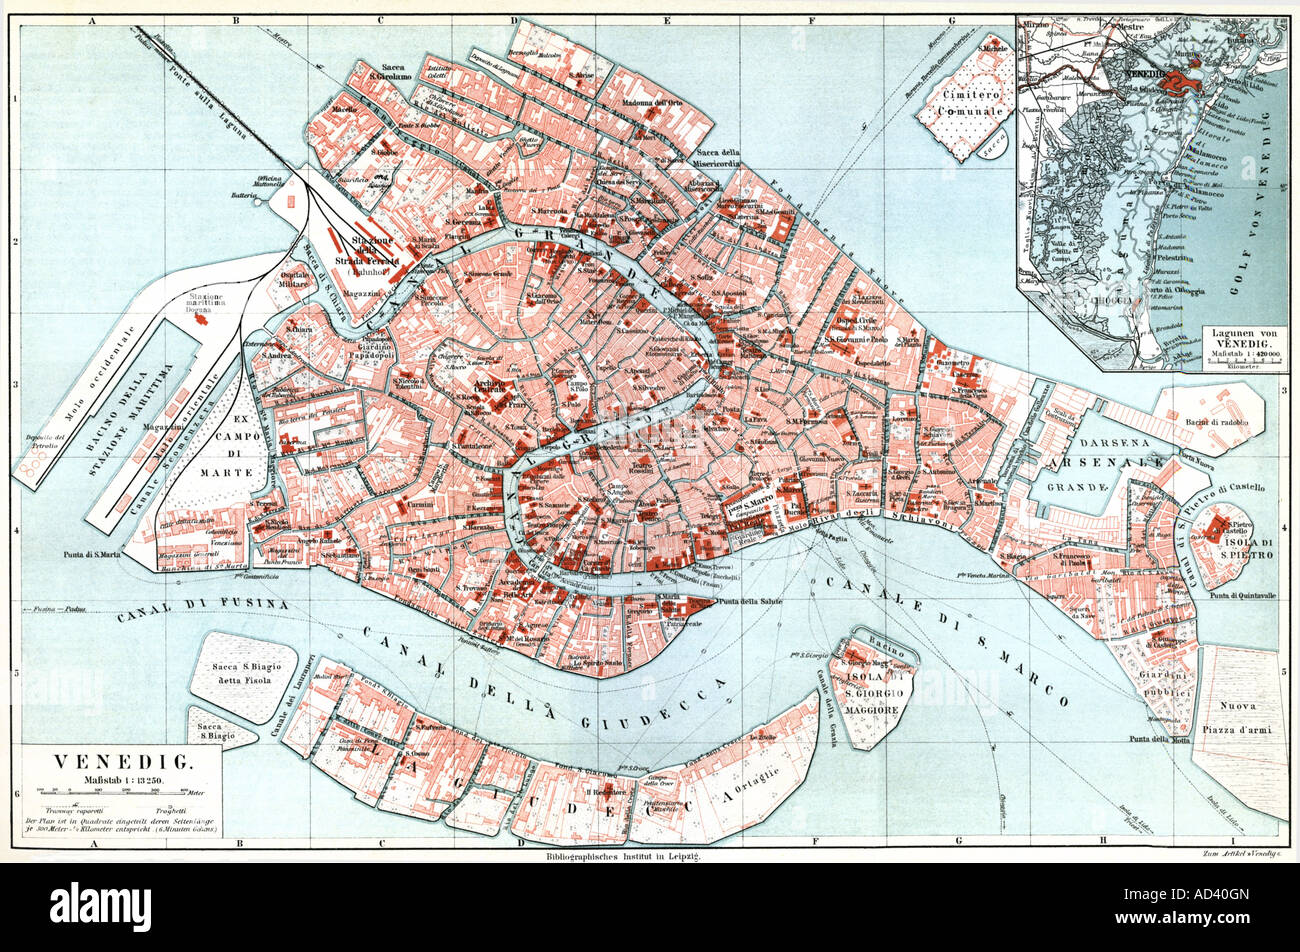 cartography, city maps, Italy, Venice, Meyers Konversationslexikon, 1897, Additional-Rights-Clearances-NA - Stock Image